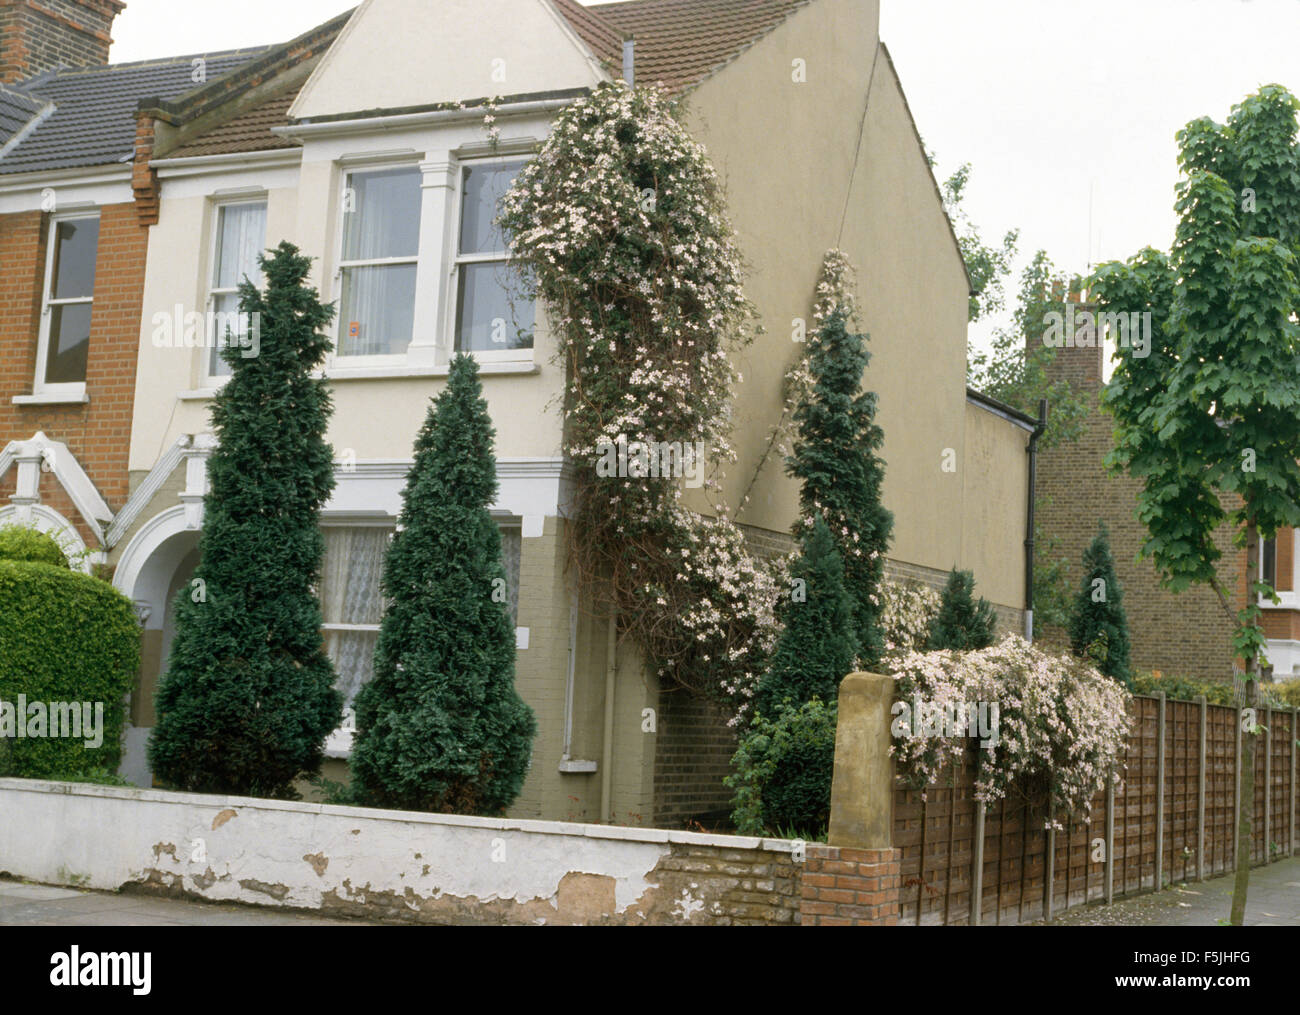 Conifers growing in front garden of semi-detached Edwardian townhouse with a pink clematis on the wall - Stock Image